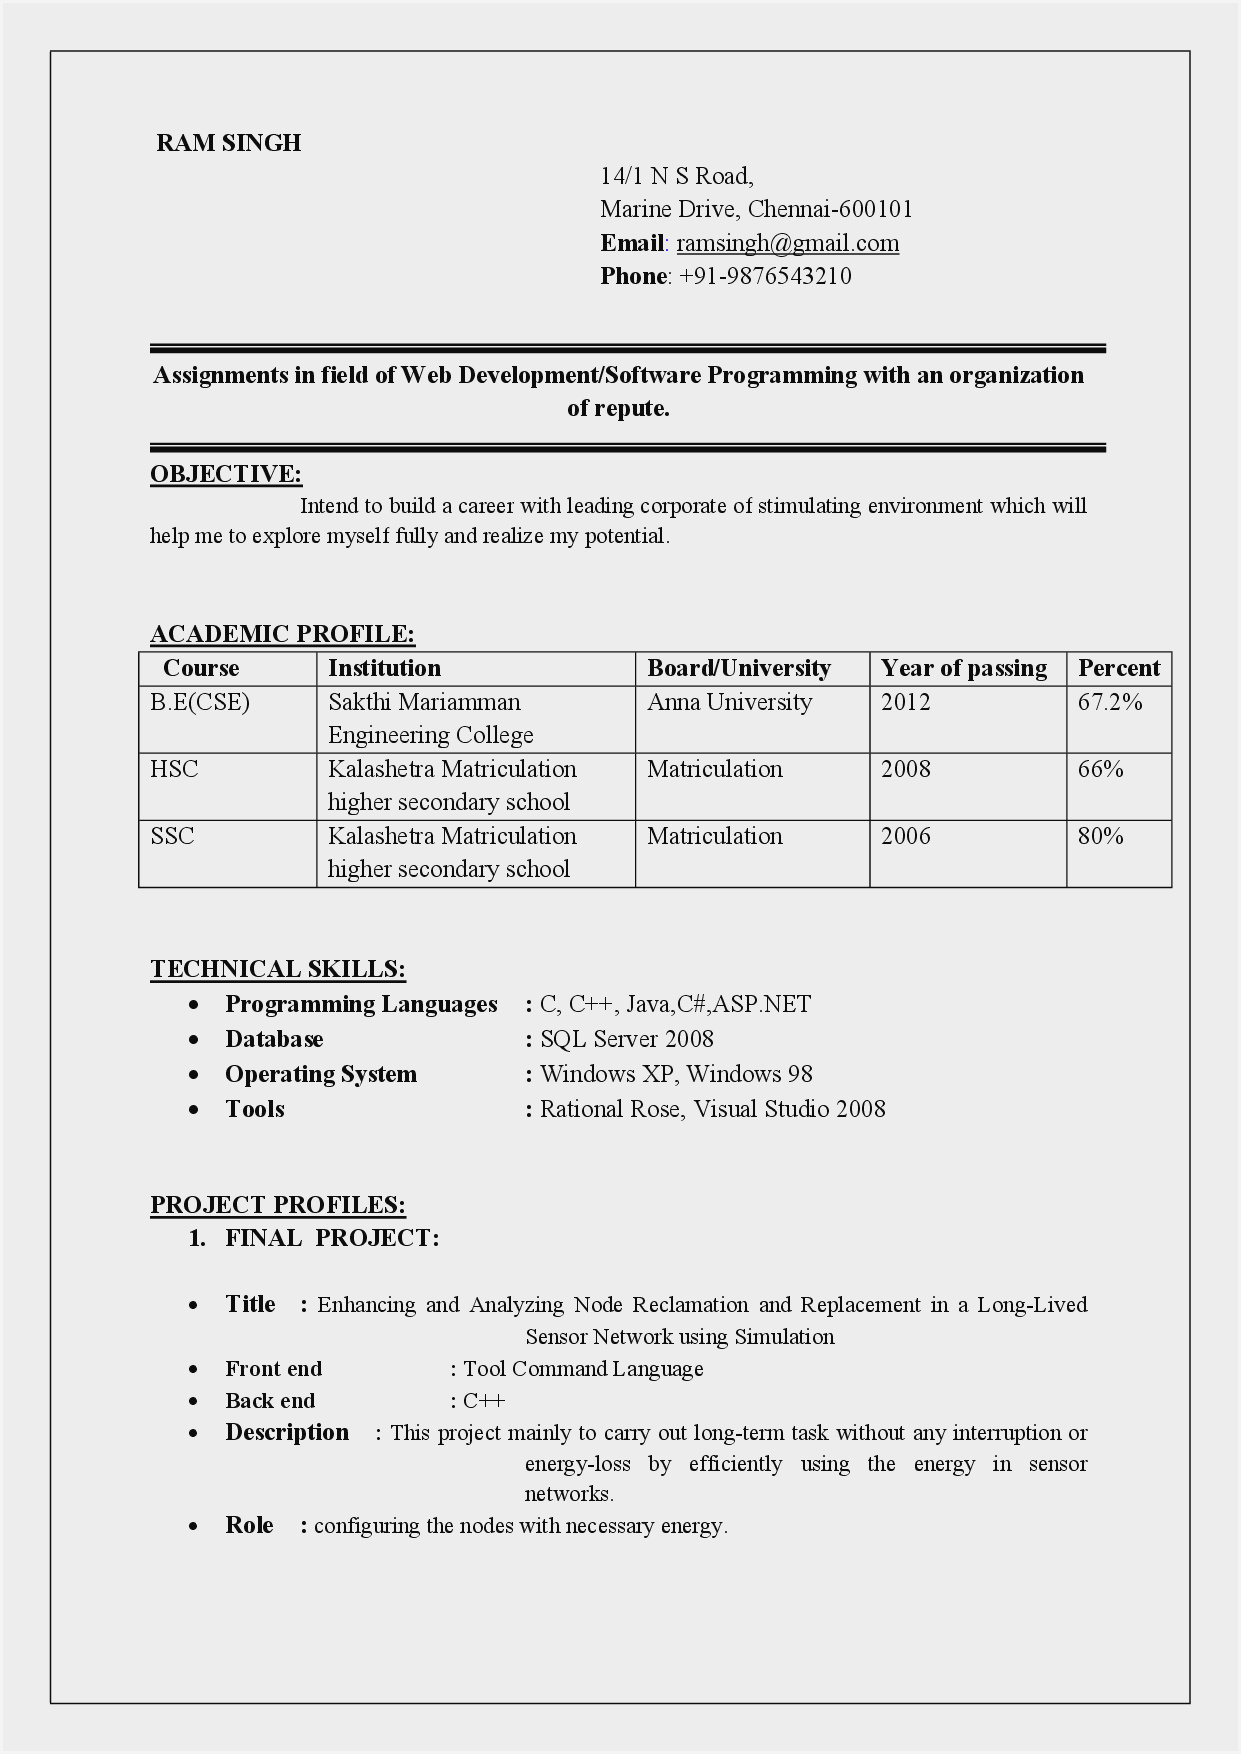 resume of computer science engineering student fresher samples for graduates format Resume Resume Samples For Computer Science Graduates